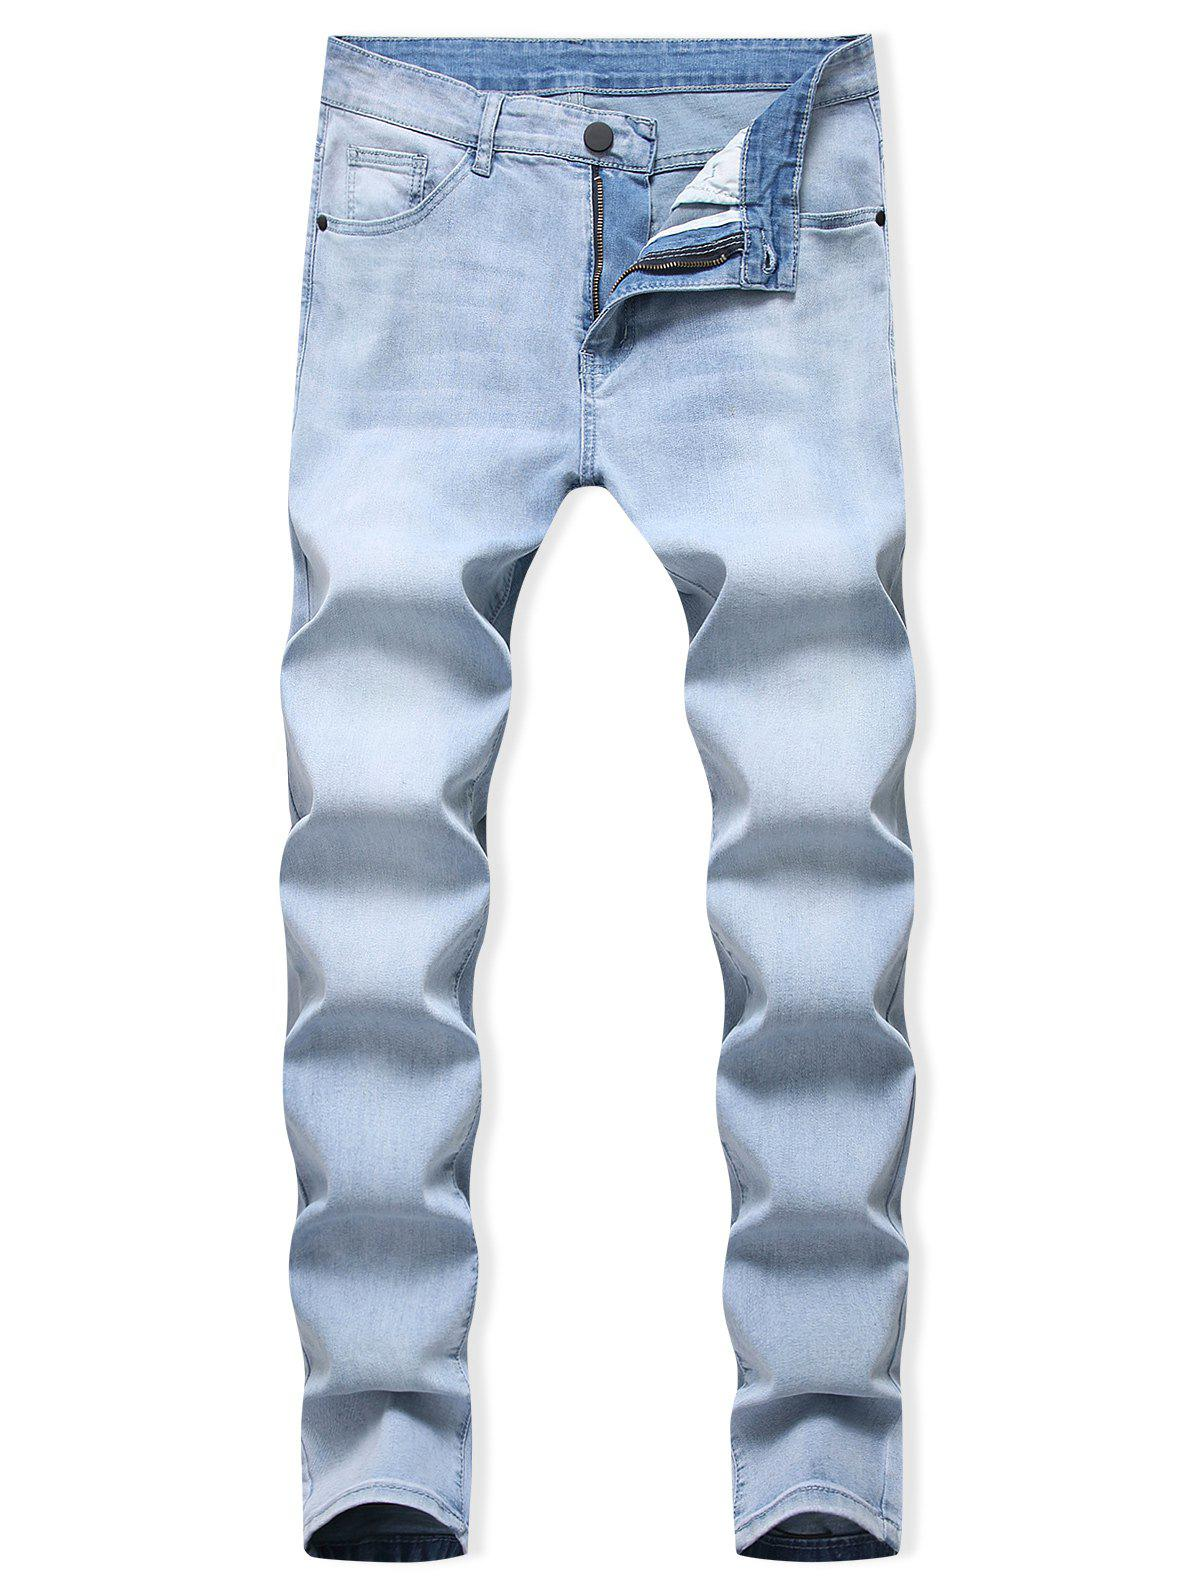 Light Wash Zipper Fly Casual Jeans - JEANS BLUE 42